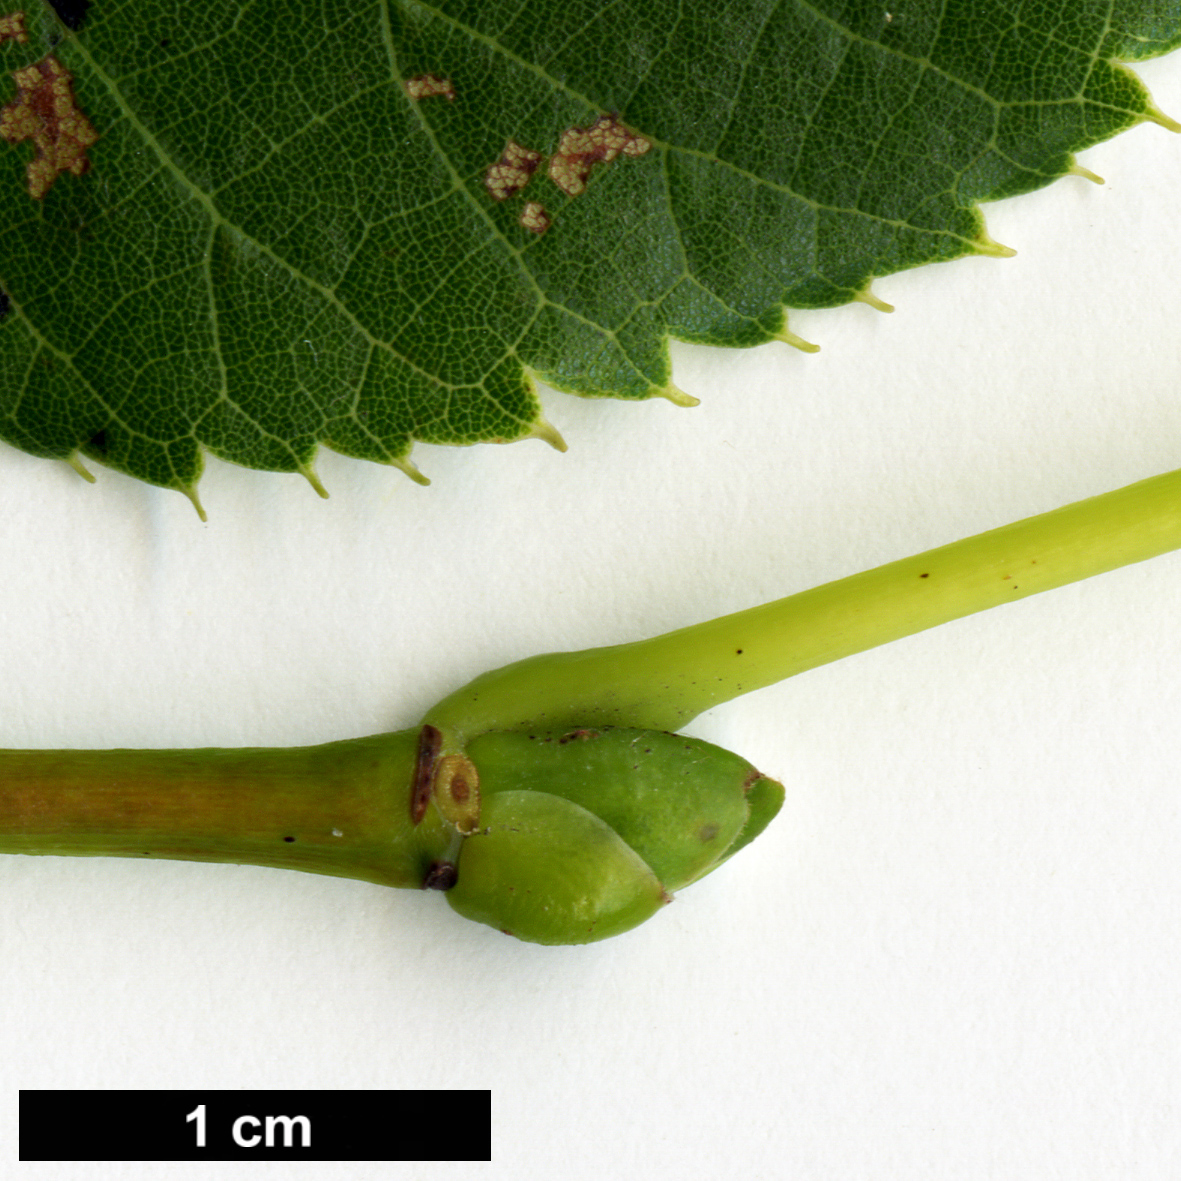 High resolution image: Family: Malvaceae - Genus: Tilia - Taxon: chinensis - SpeciesSub: var. investita